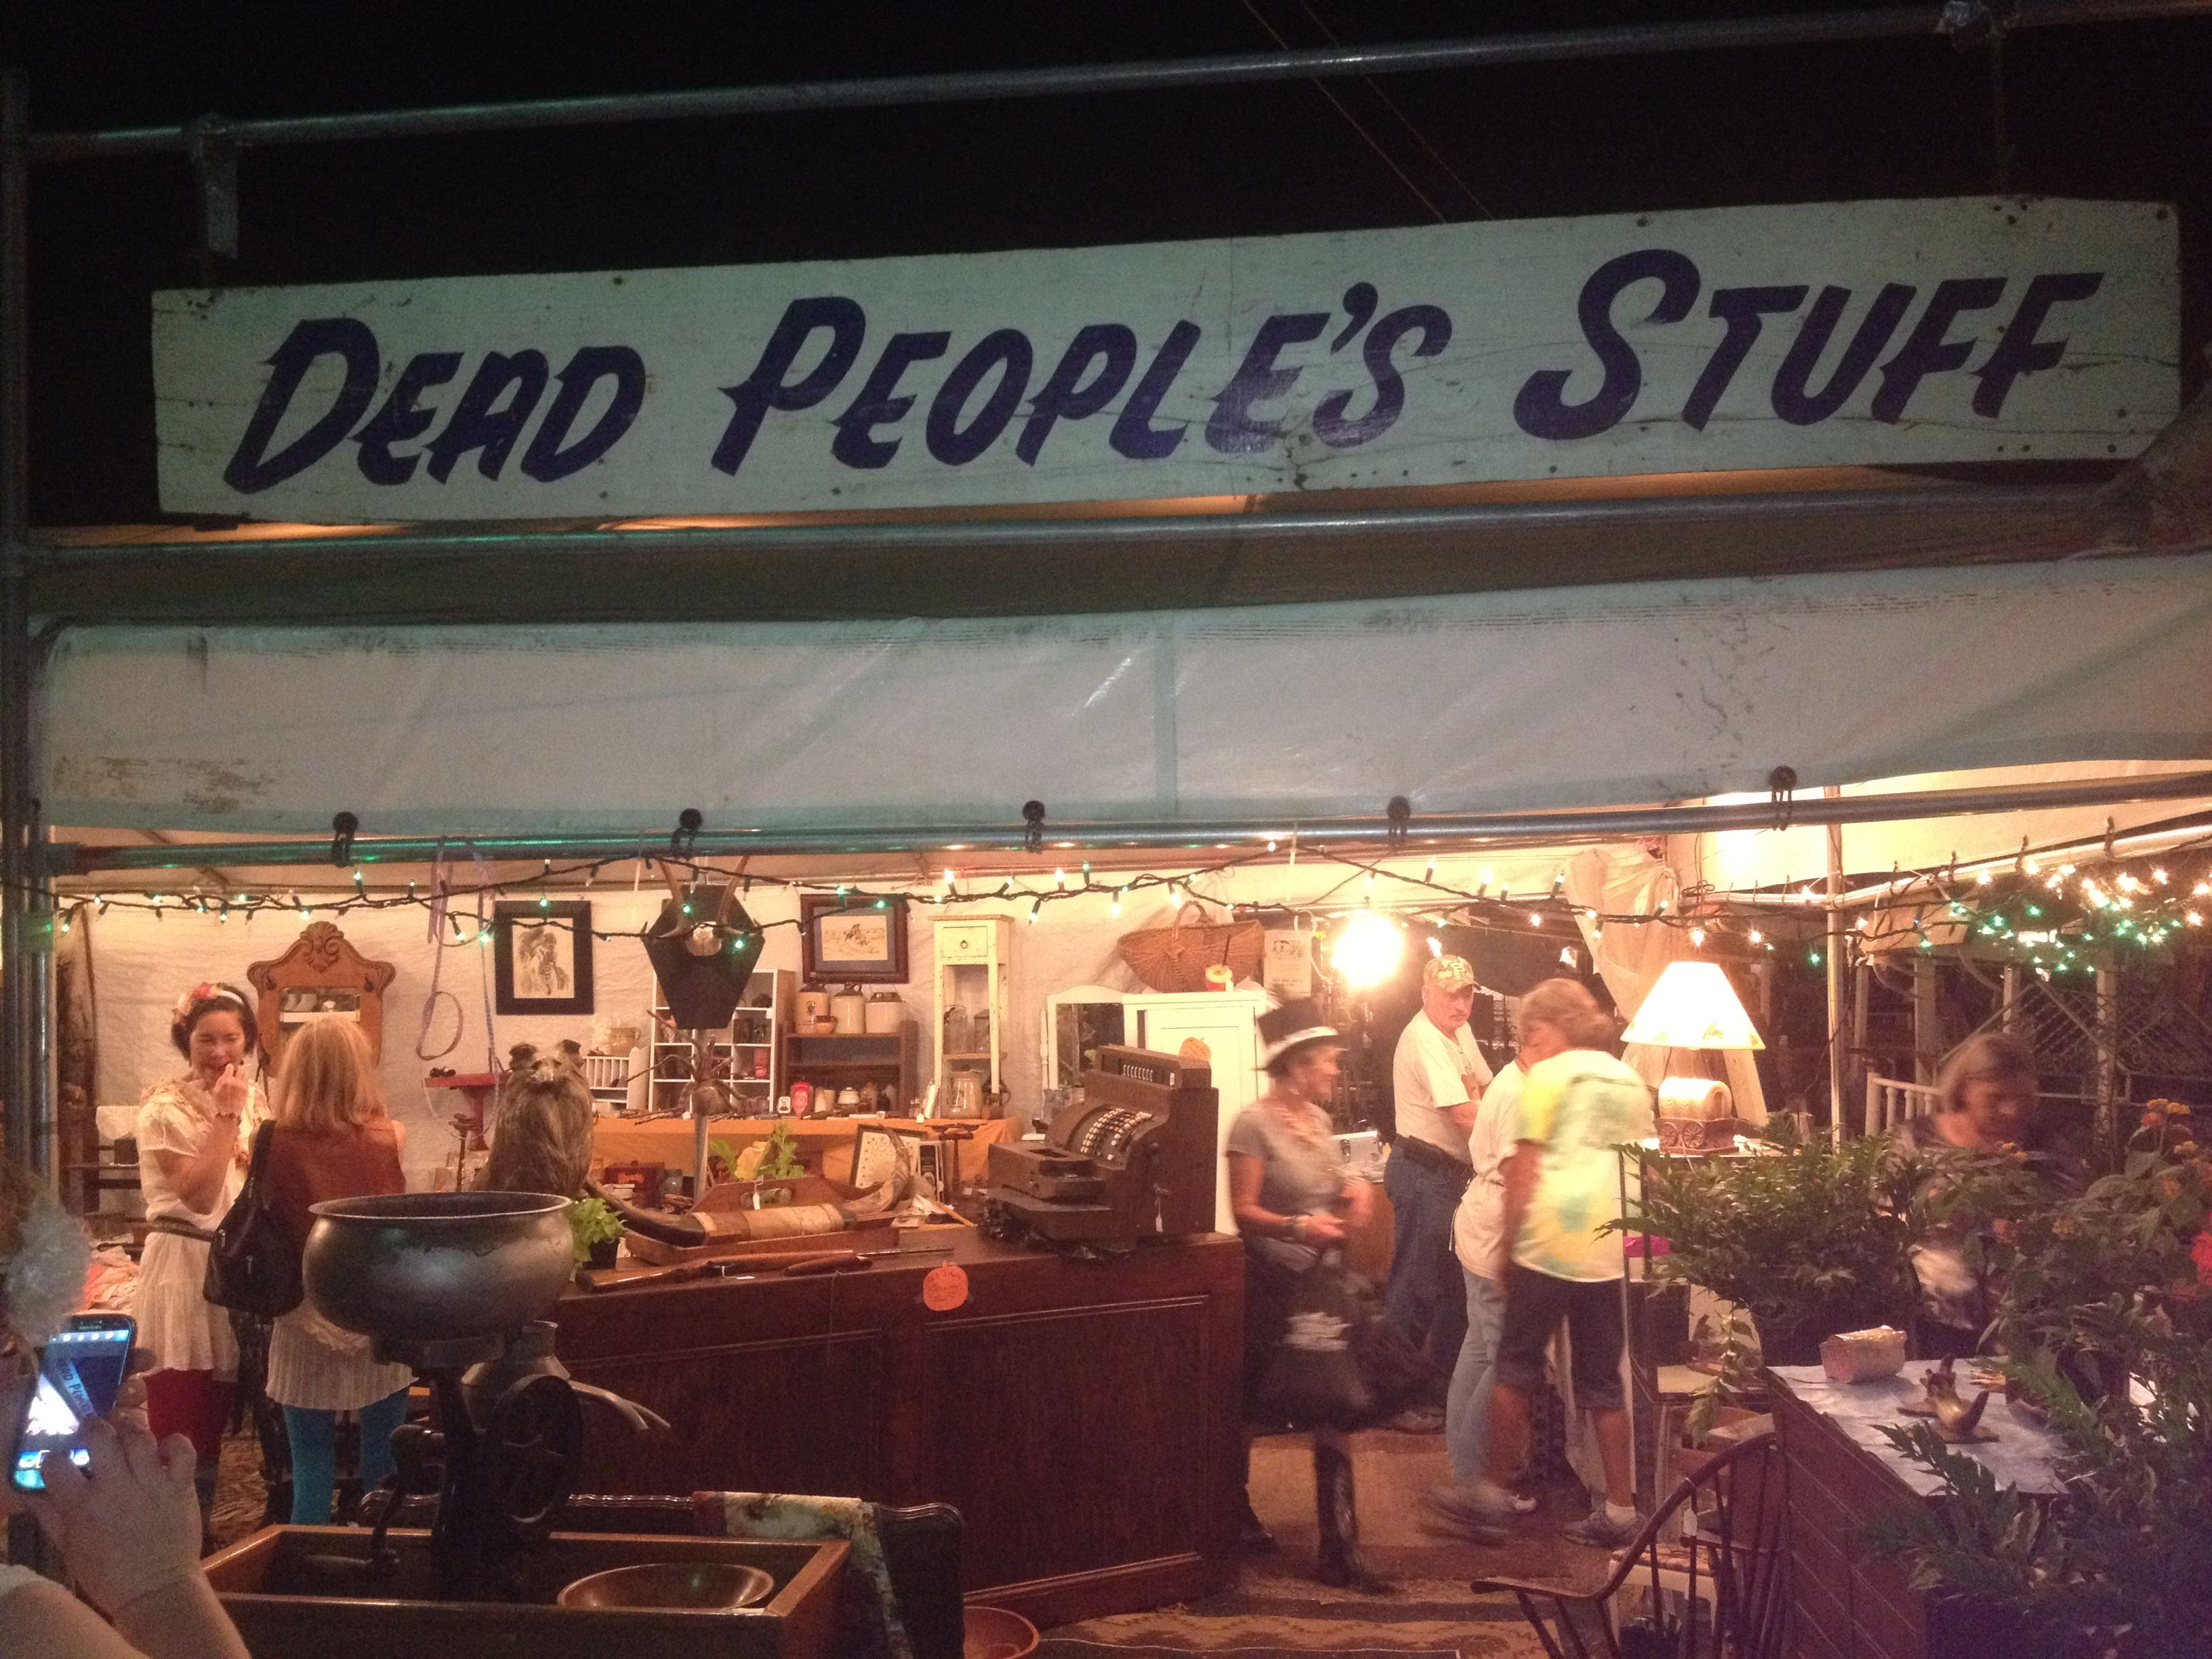 Dead People&39s Stuff/Best place to buy Cowboy Boots in WARRENTON